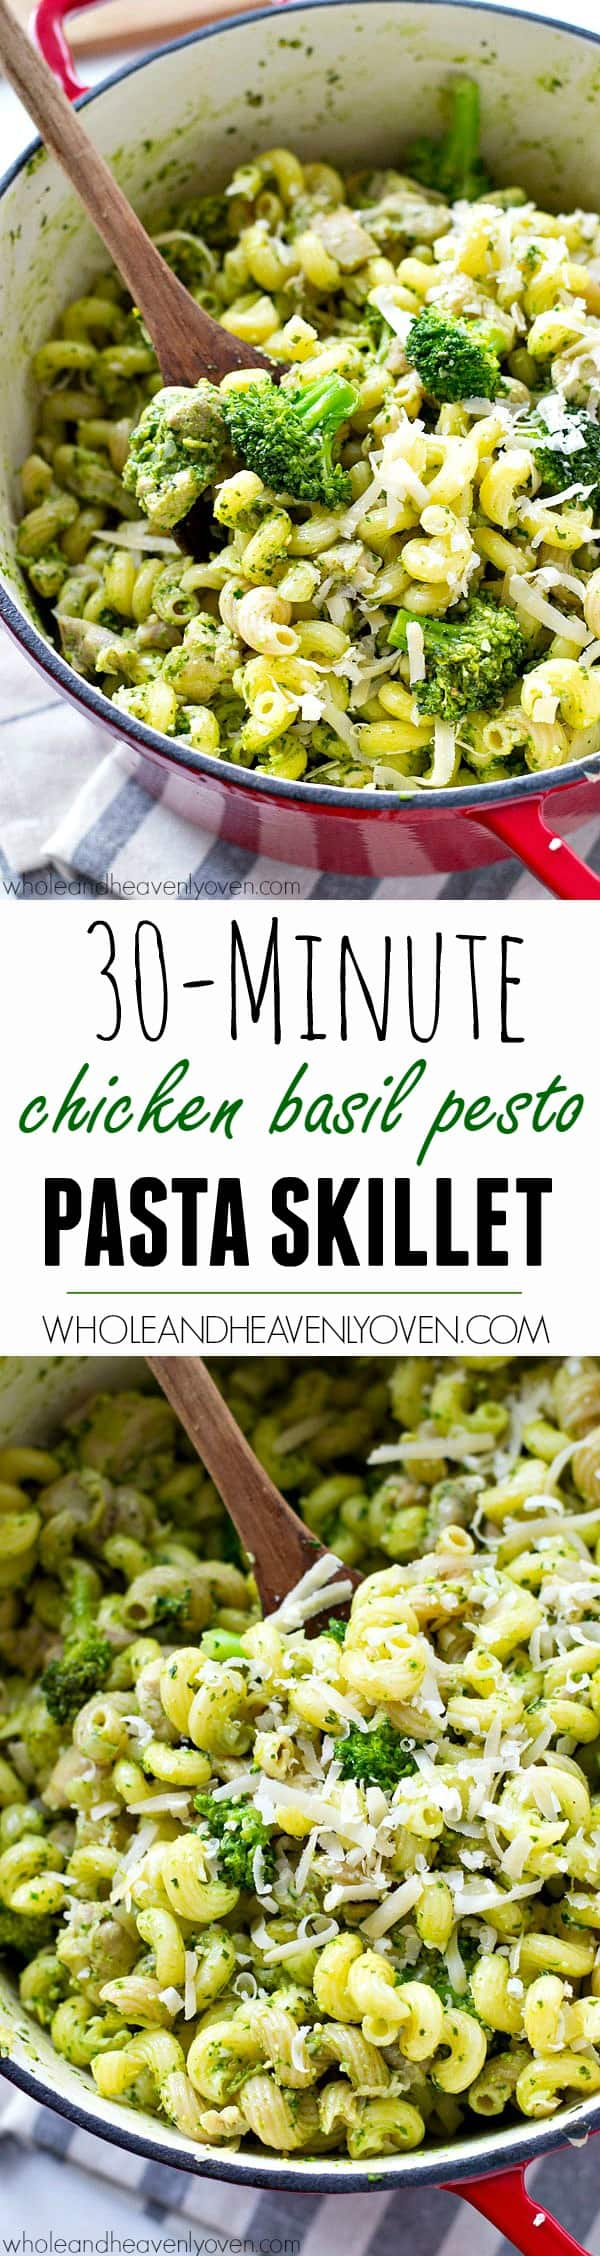 Put dinner on the table in 30 minutes flat with this simple chicken basil pesto pasta skillet that's just loaded with healthy green goodness!